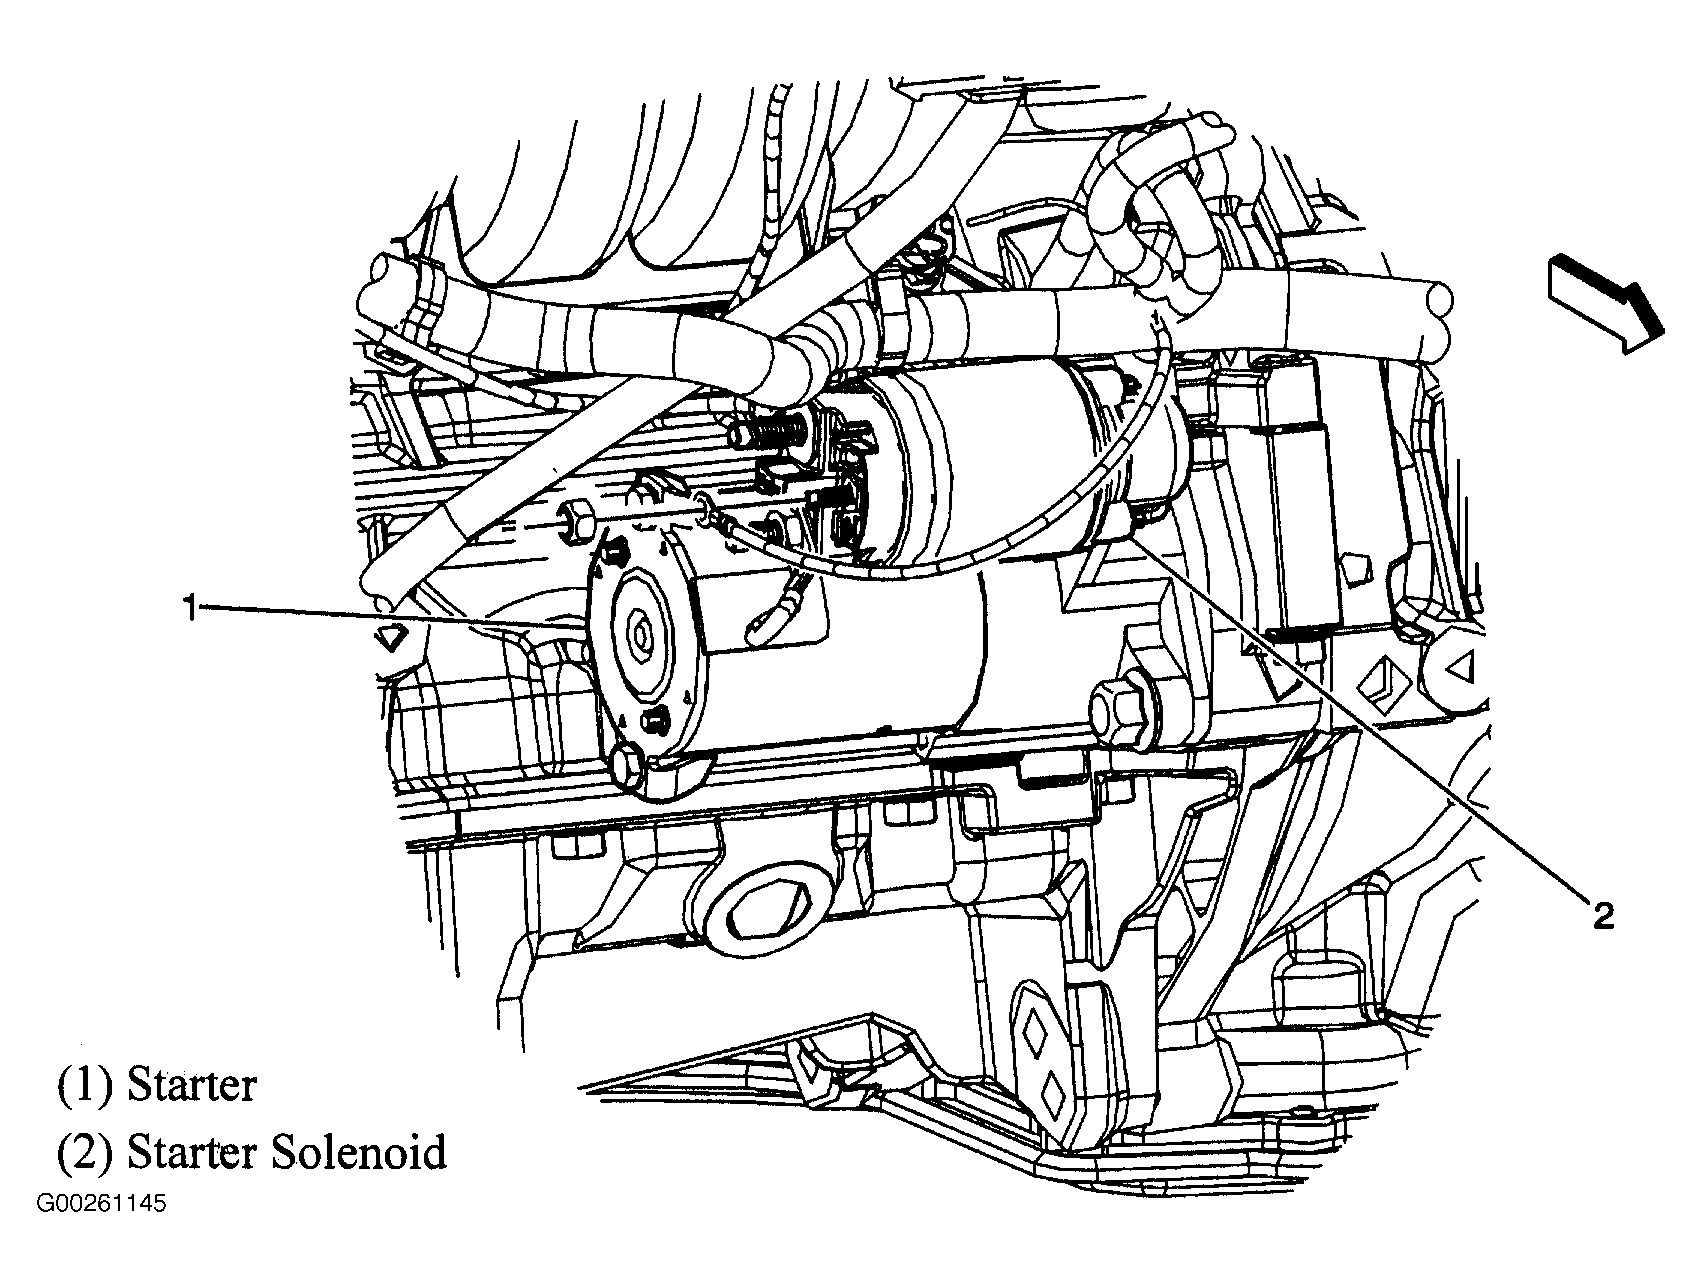 2008 chevy malibu engine diagram my wiring diagram